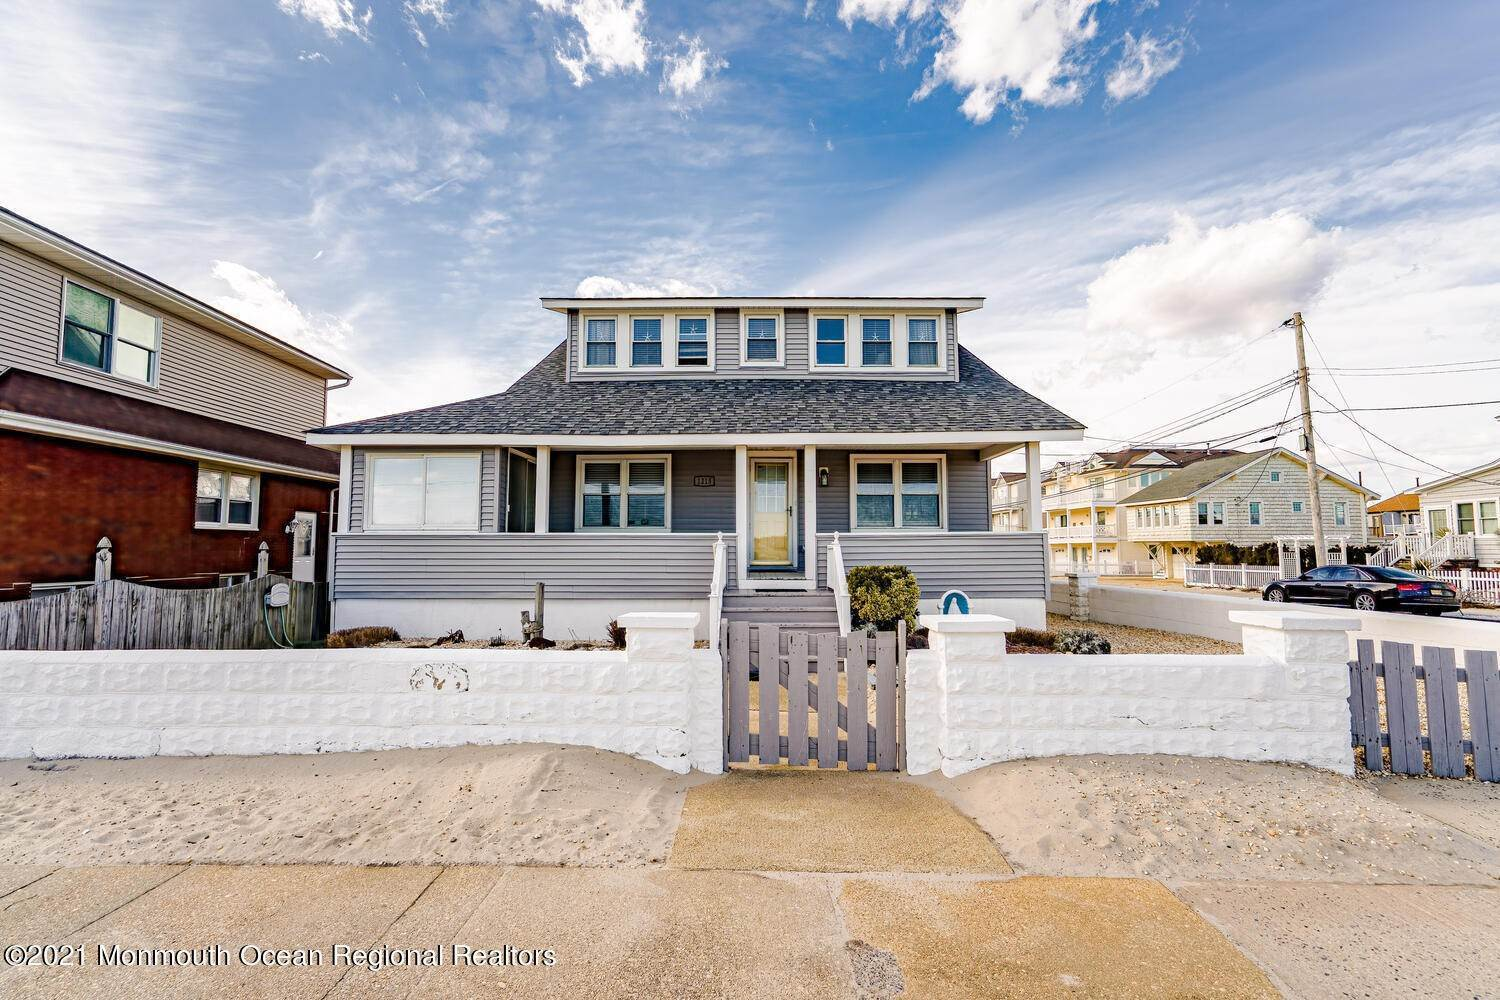 Multi-Family Homes for Sale at 1215 Ocean Avenue Seaside Park, New Jersey 08752 United States